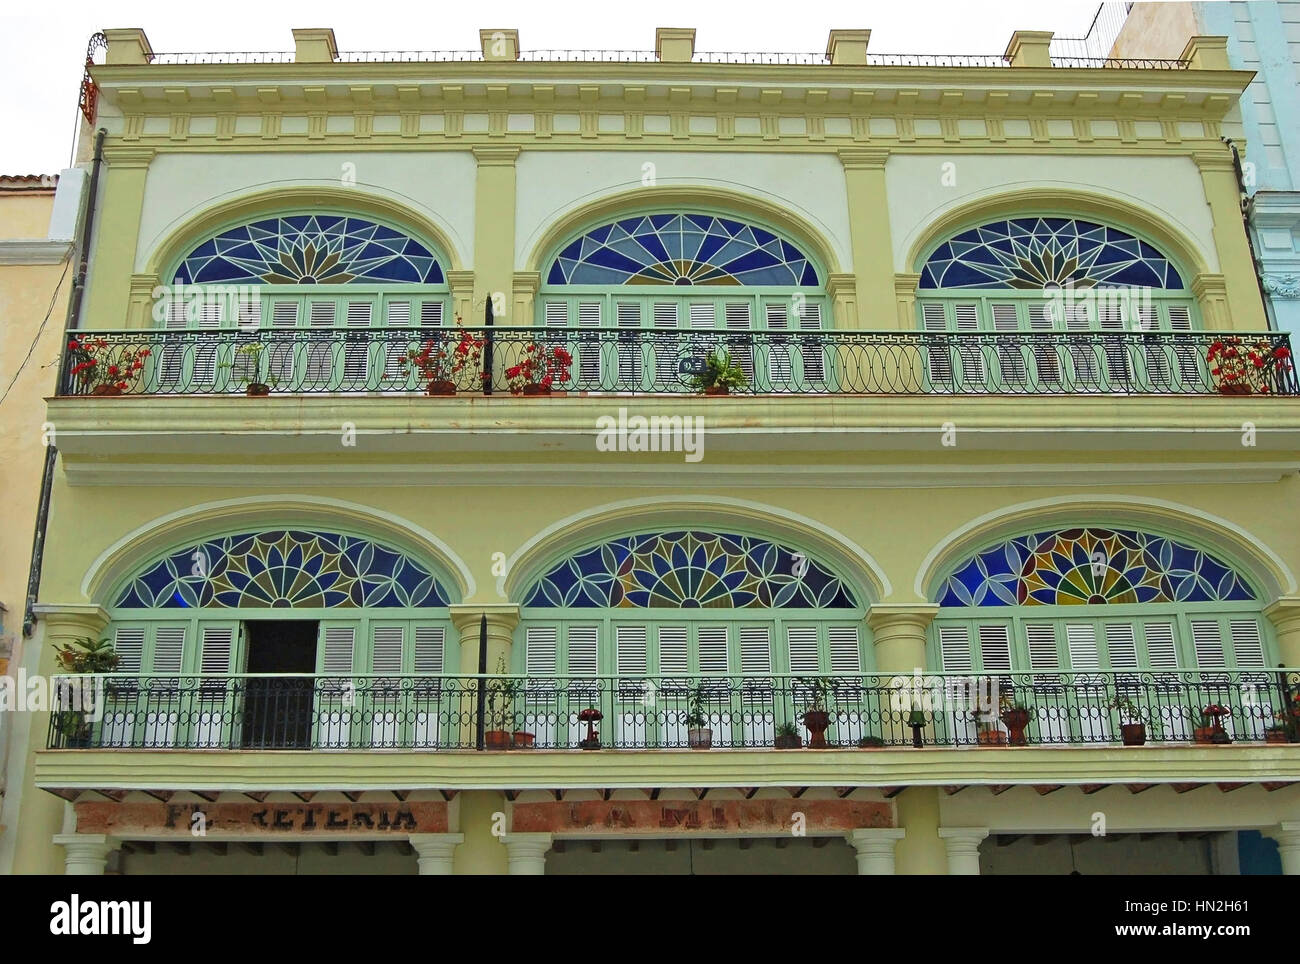 View of the Two Upper Levels of Enclosed Loggias of Casa de Manuel Antuve in Plaza Vieja, Old Havana, Cuba - Stock Image